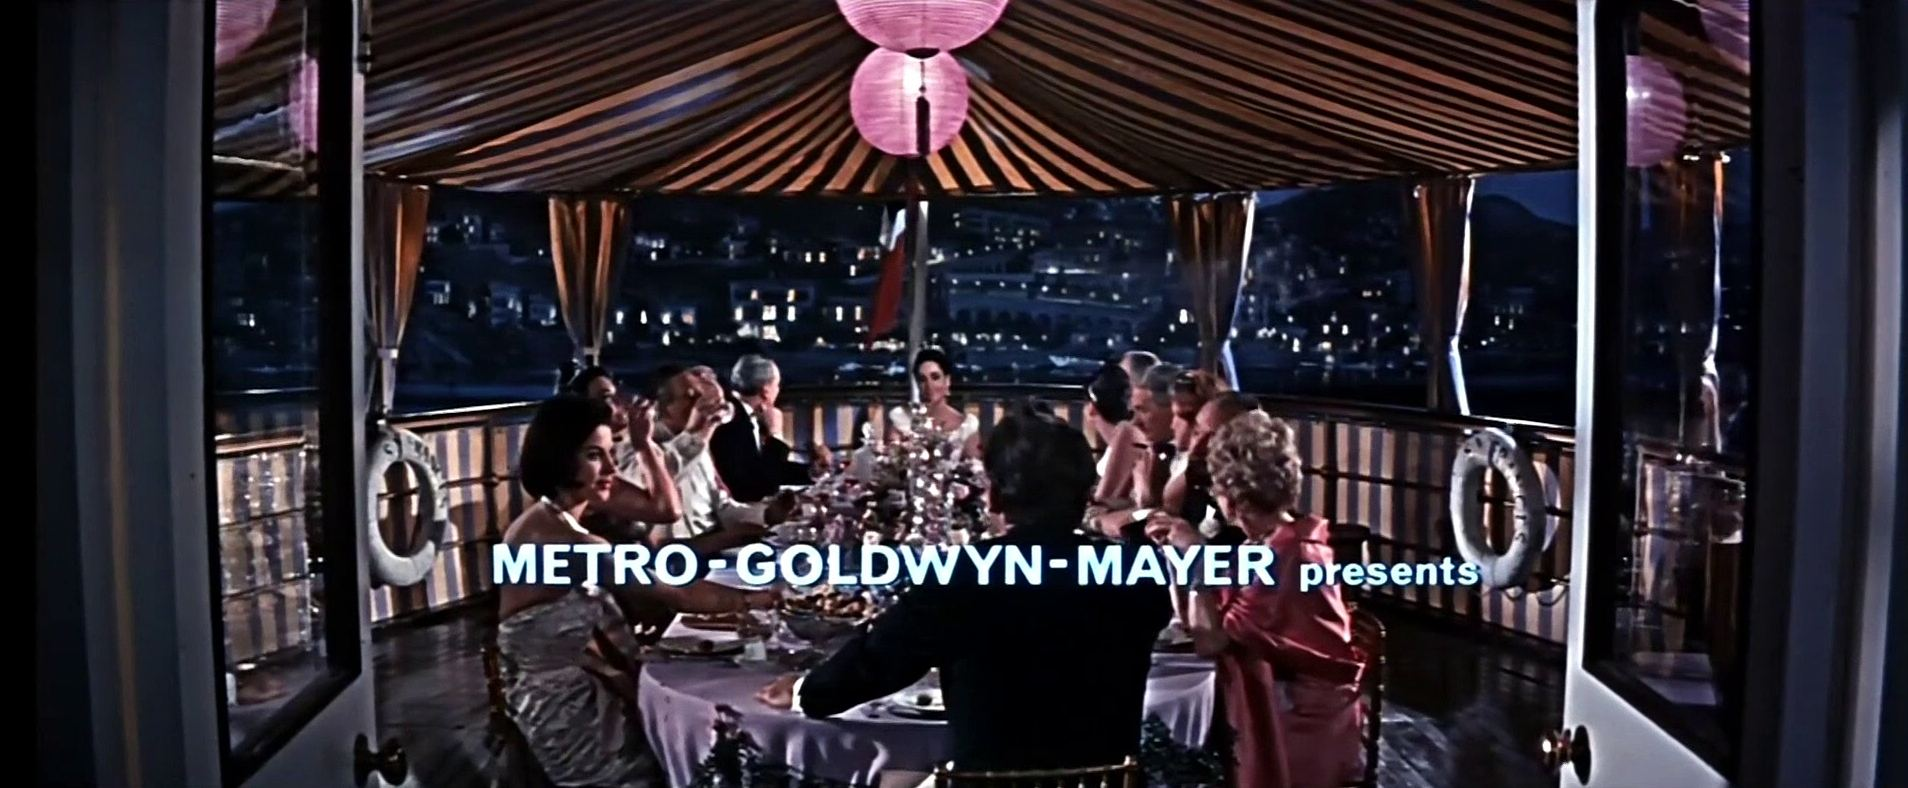 Main title from The VIPs (1963) (2). Metro-Goldwyn-Mayer presents